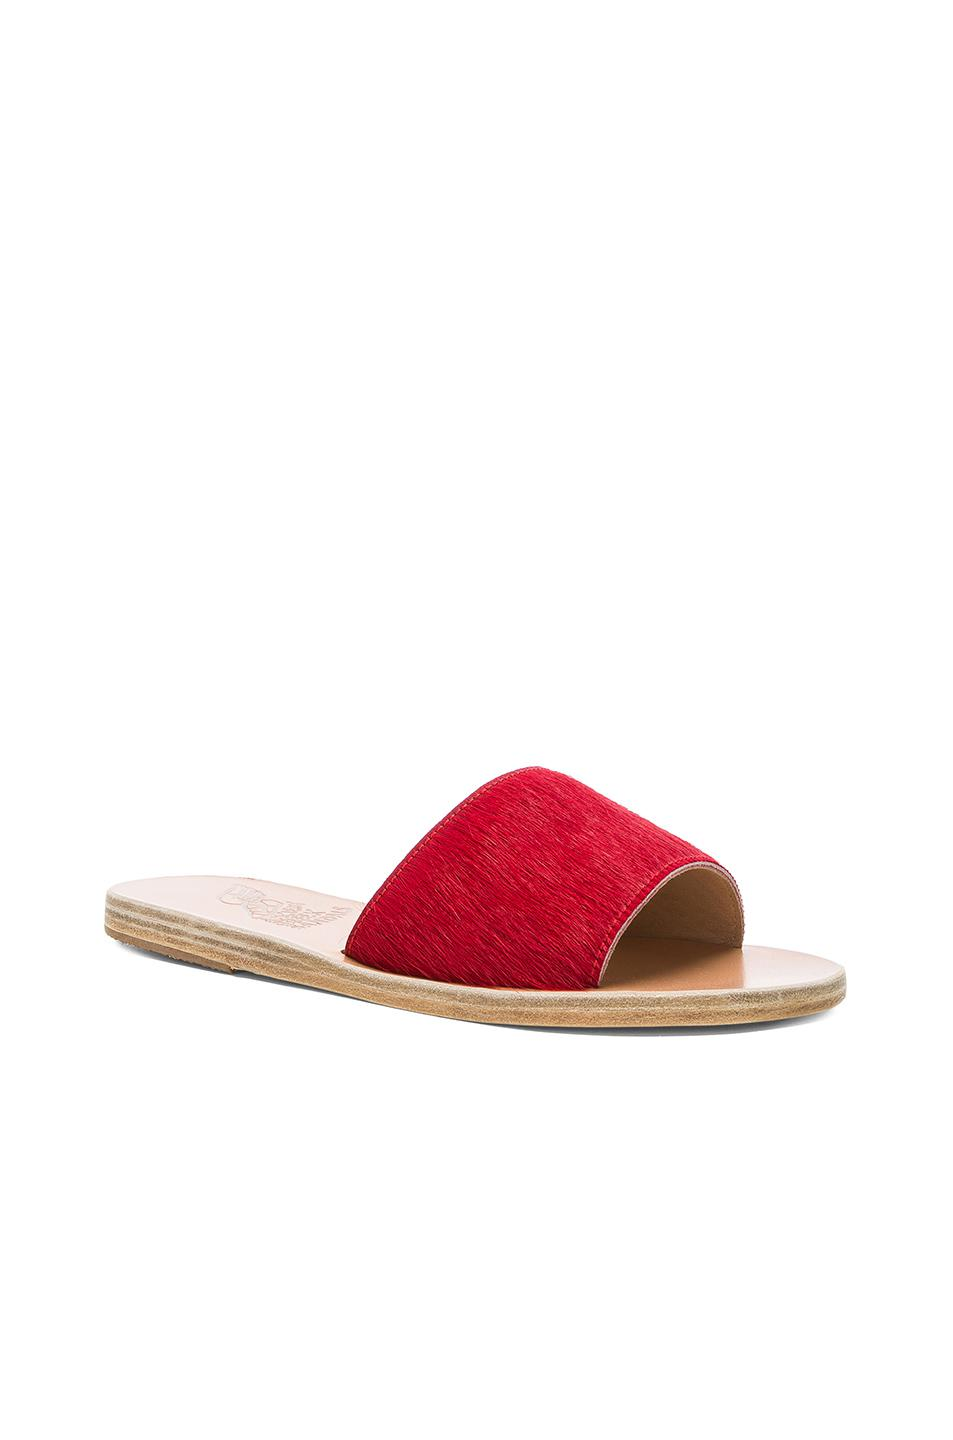 Ancient Greek Sandals Real Dyed Calf Hair Taygete Sandals in . jMFkmh28